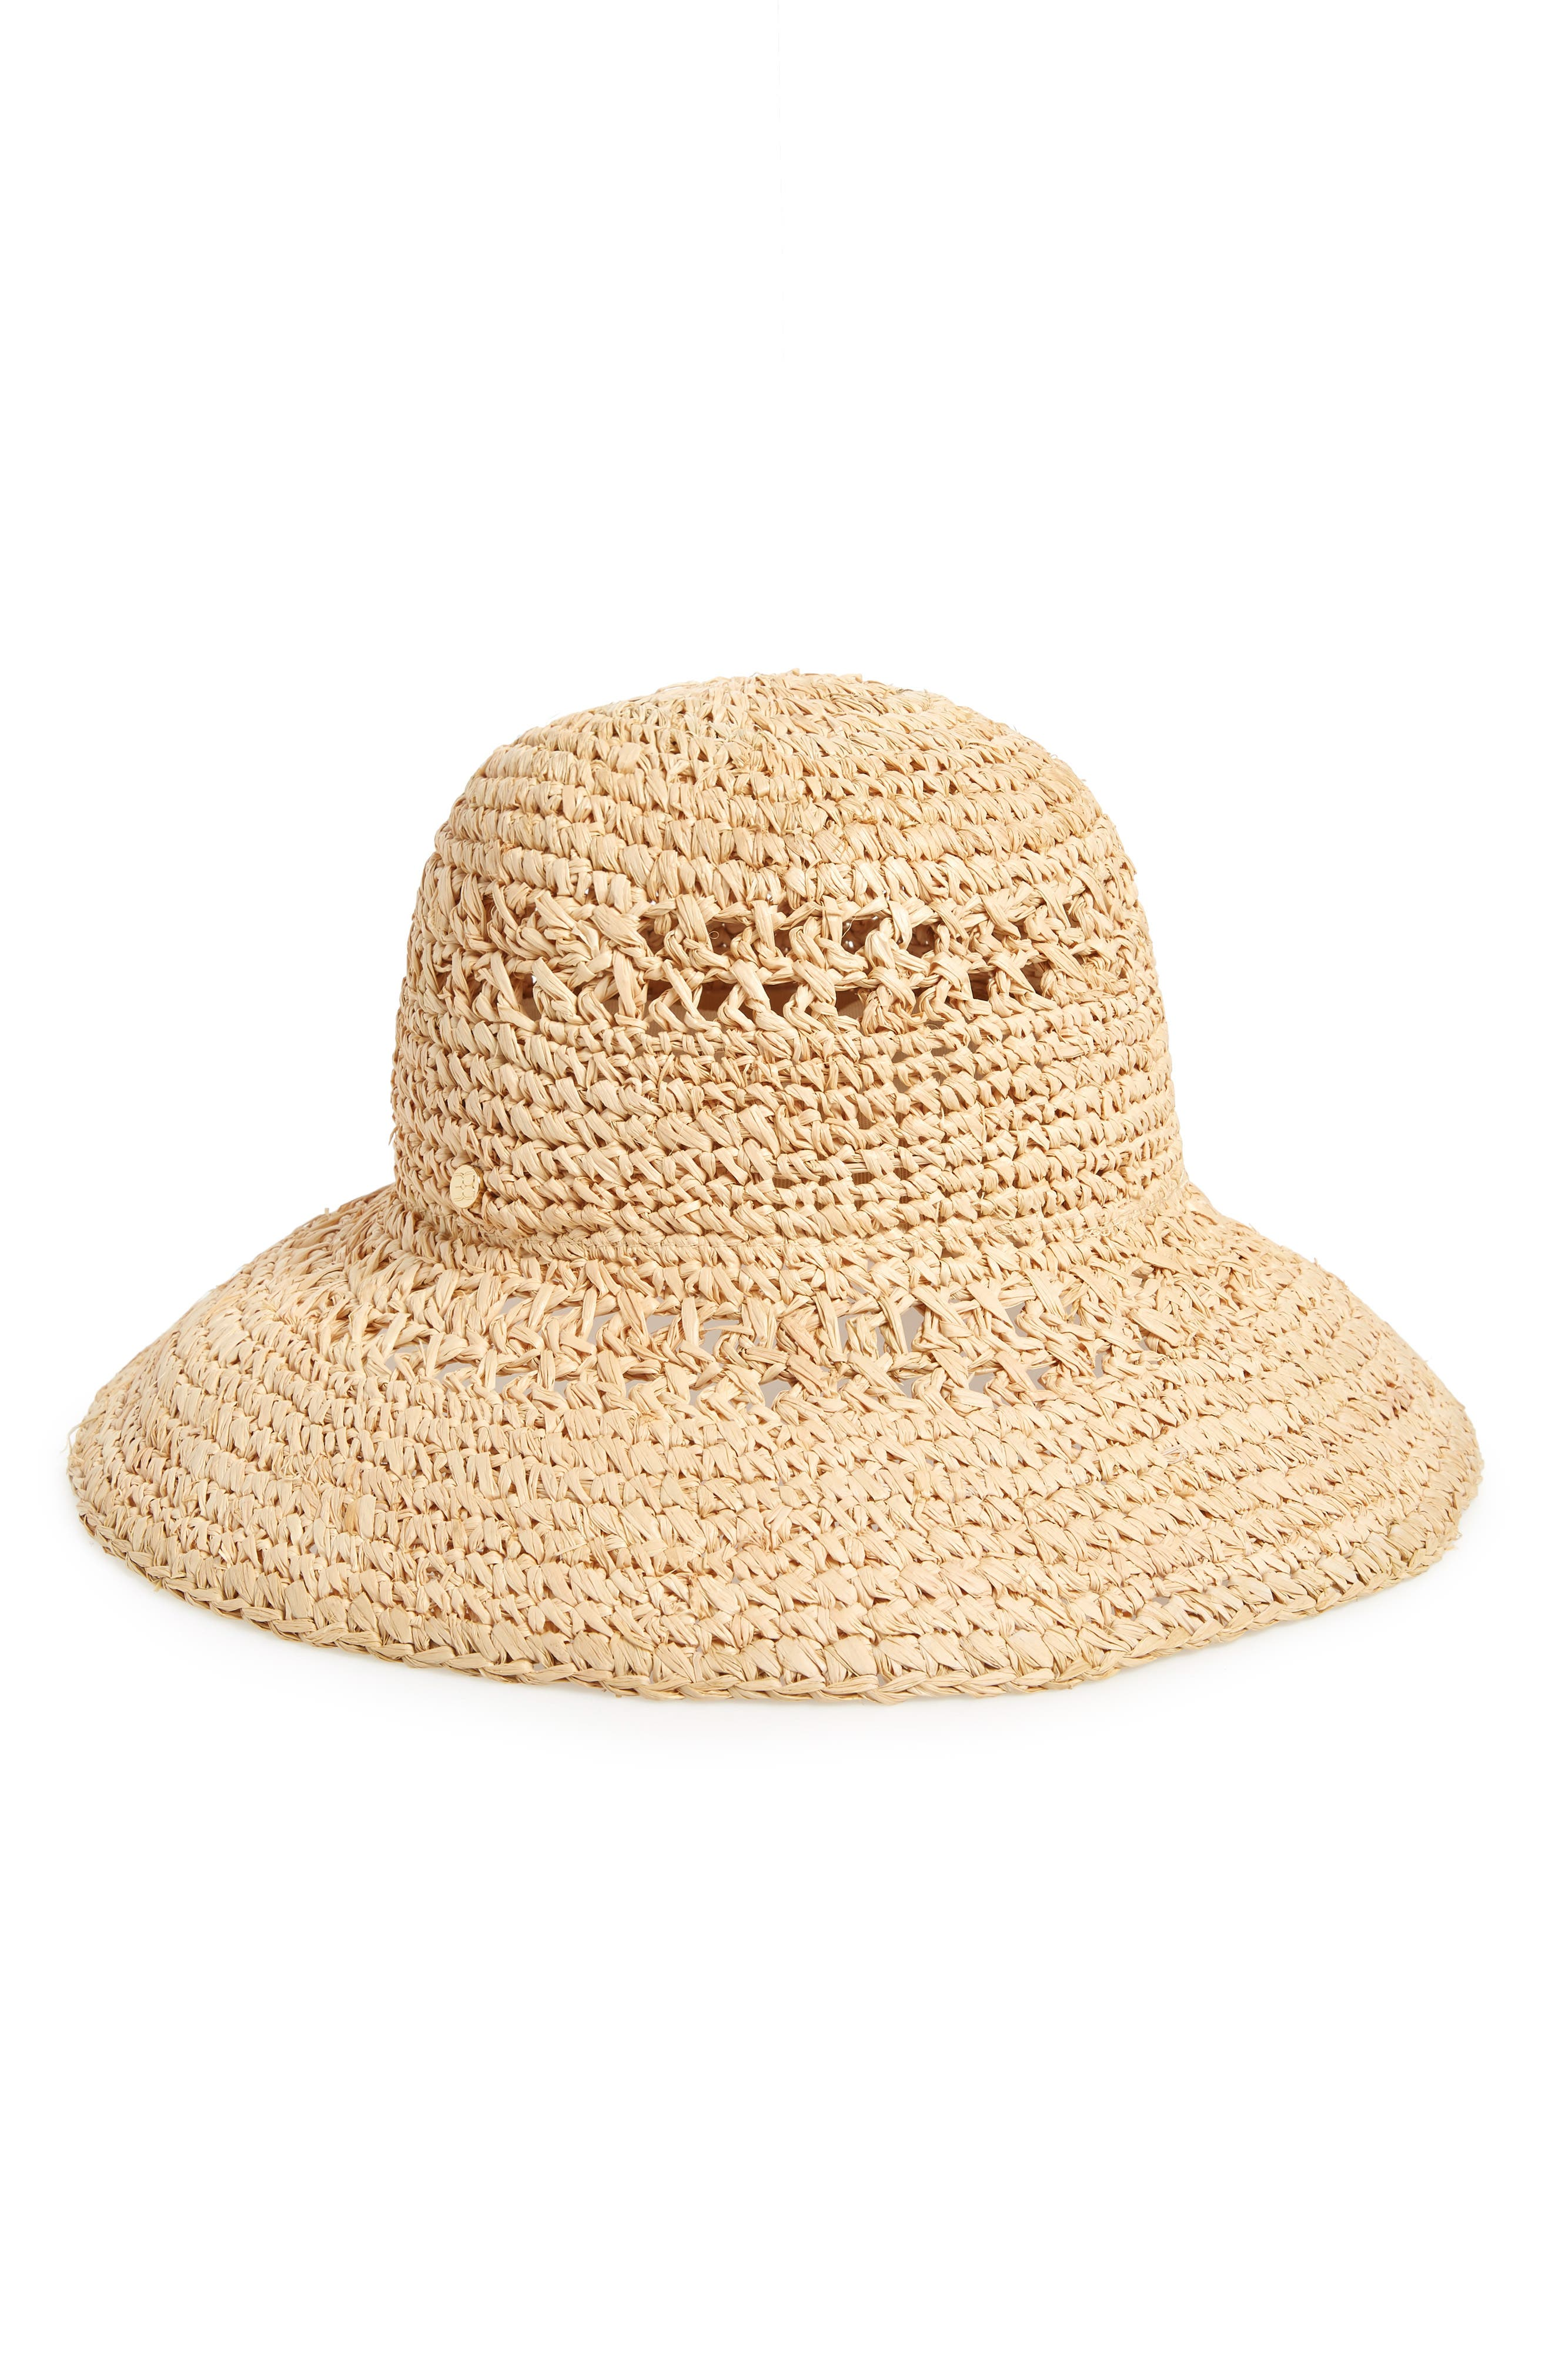 Straw Bucket Hat,                             Main thumbnail 1, color,                             NATURAL